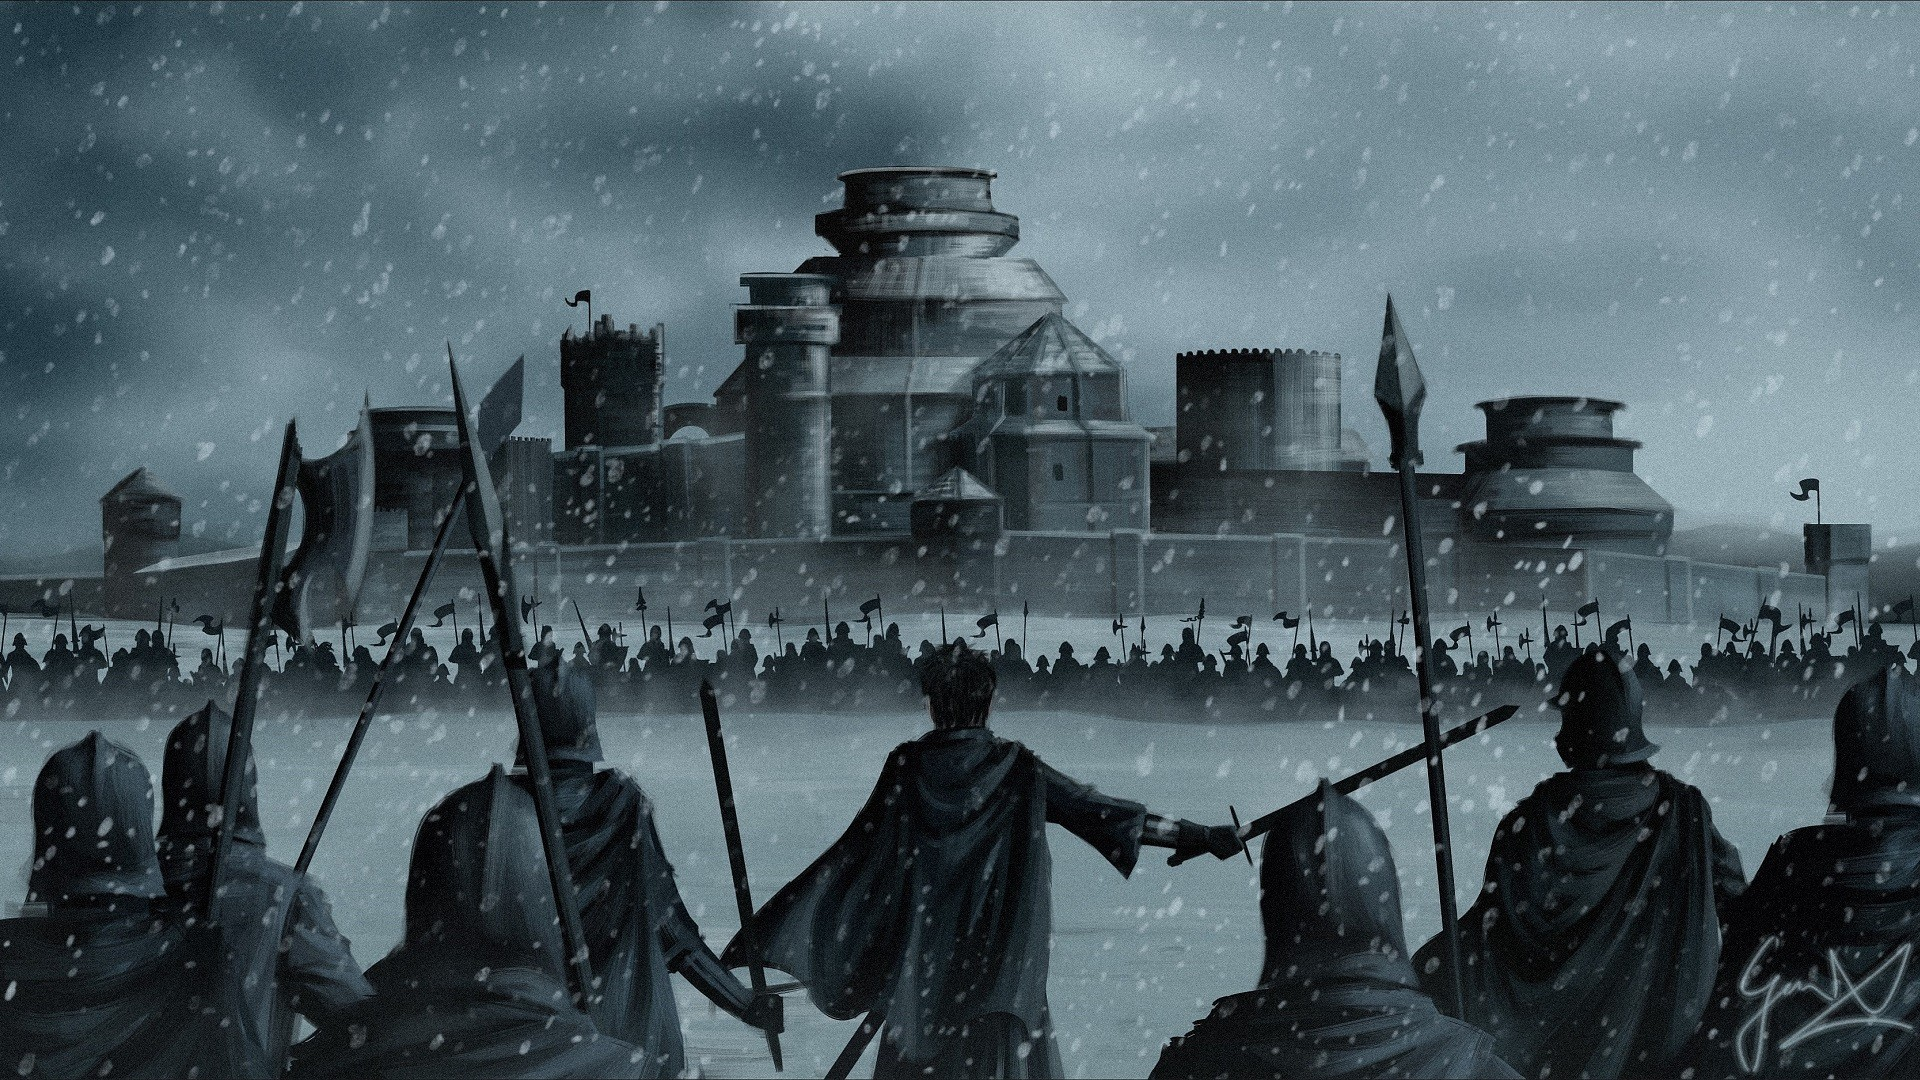 1920x1080 game-of-thrones-winterfell-stannis-baratheon-warriors-.